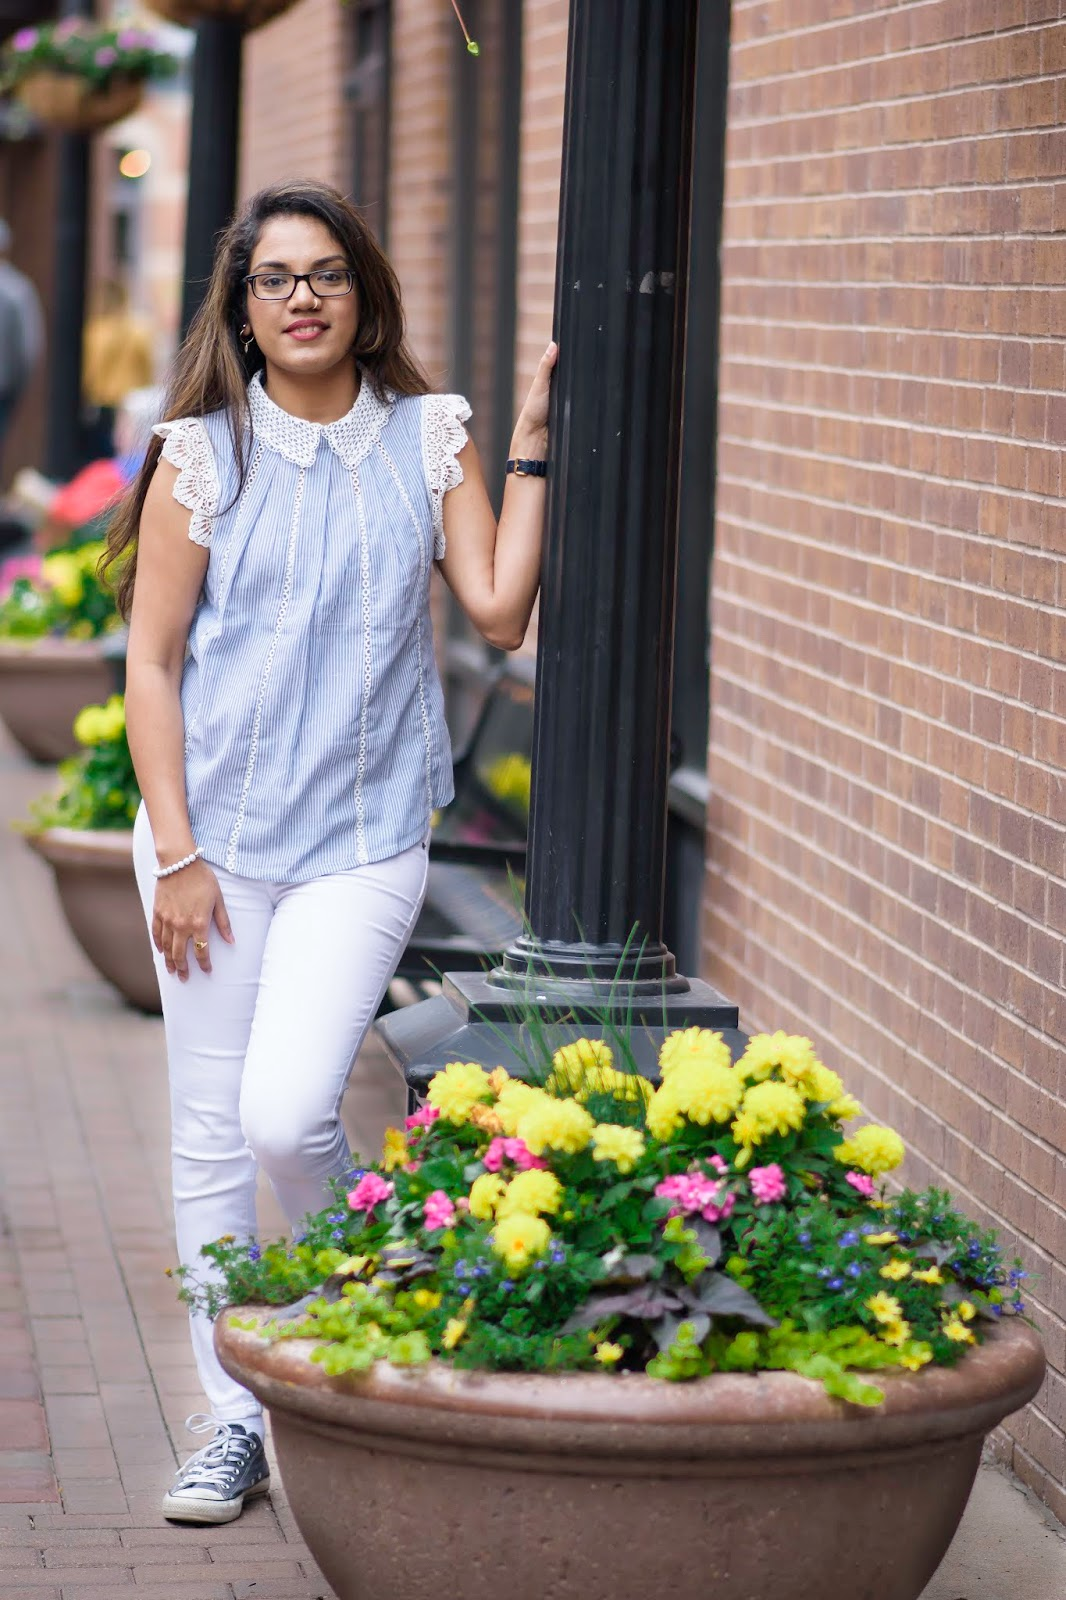 Prasanthi Kadiyala; AimforGlam; Storets; Fashion Trends; Outfit Ideas; Outfit Inspiration; Fashion Blogger; Fashion Blog; Indian Fashion Blogger